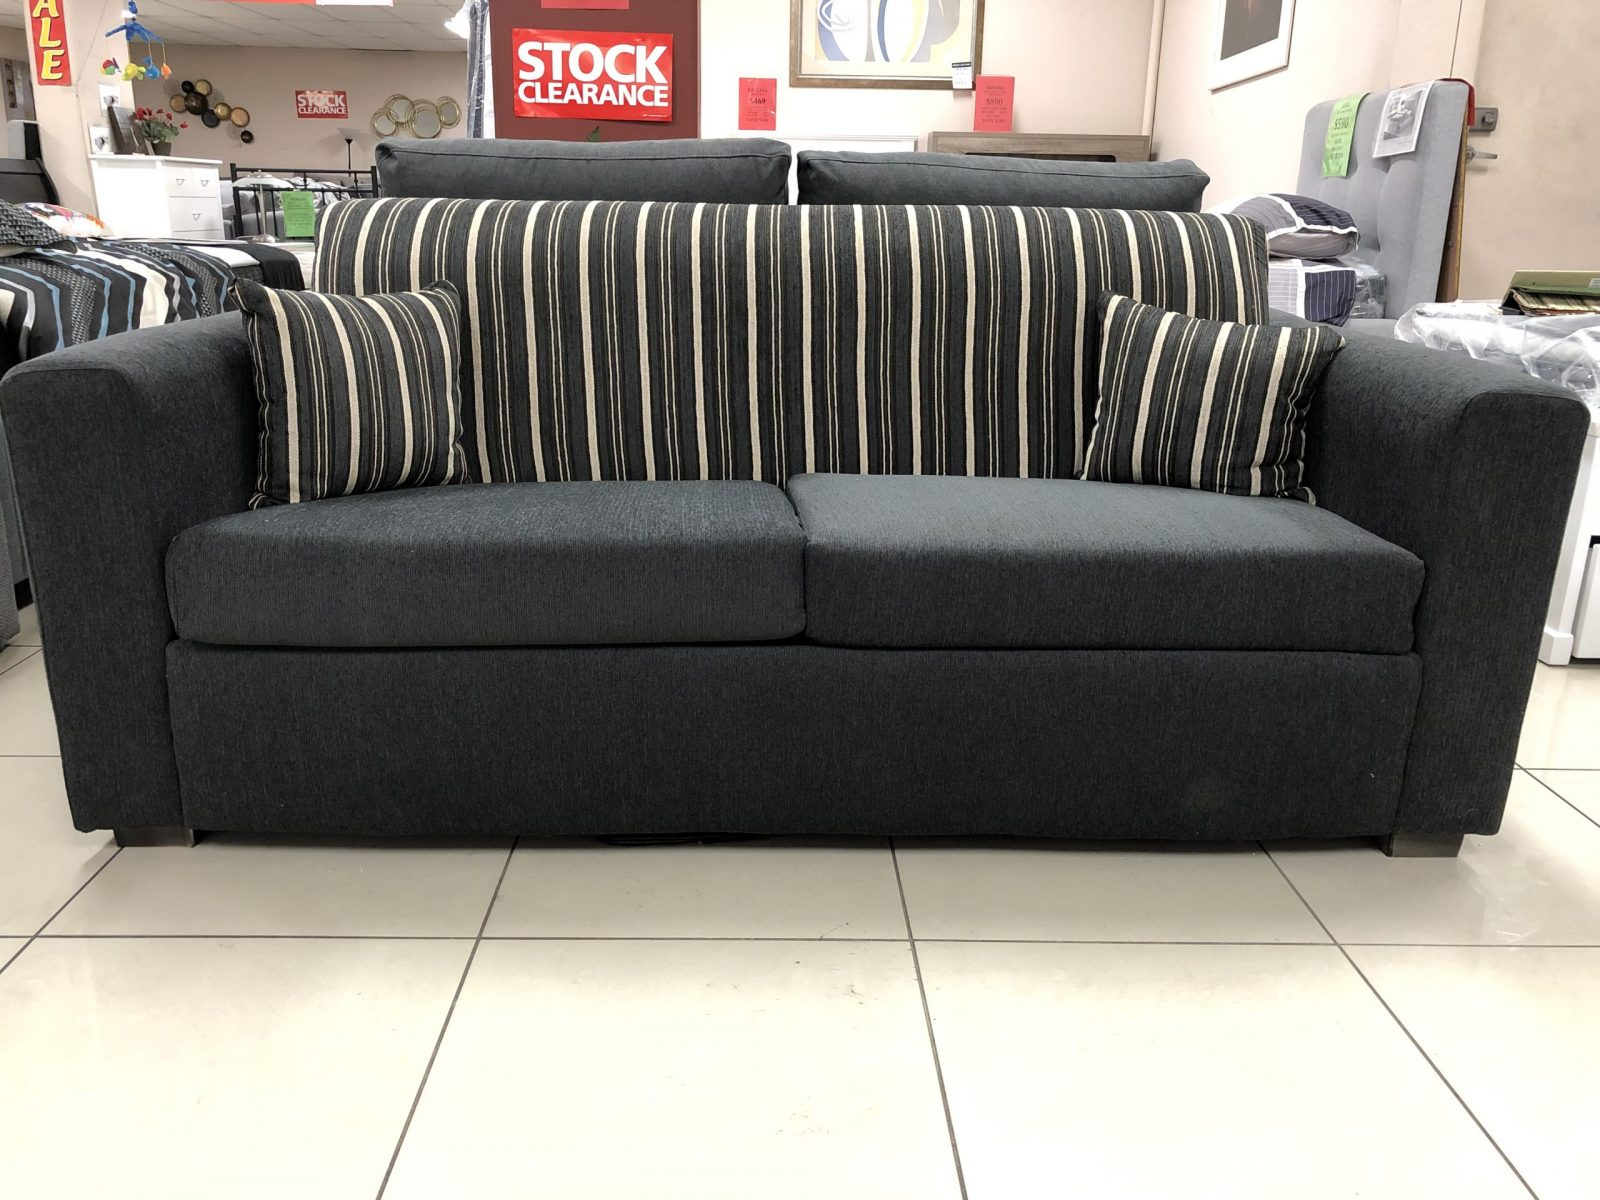 Carry 2.5 Seater Sofa Bed